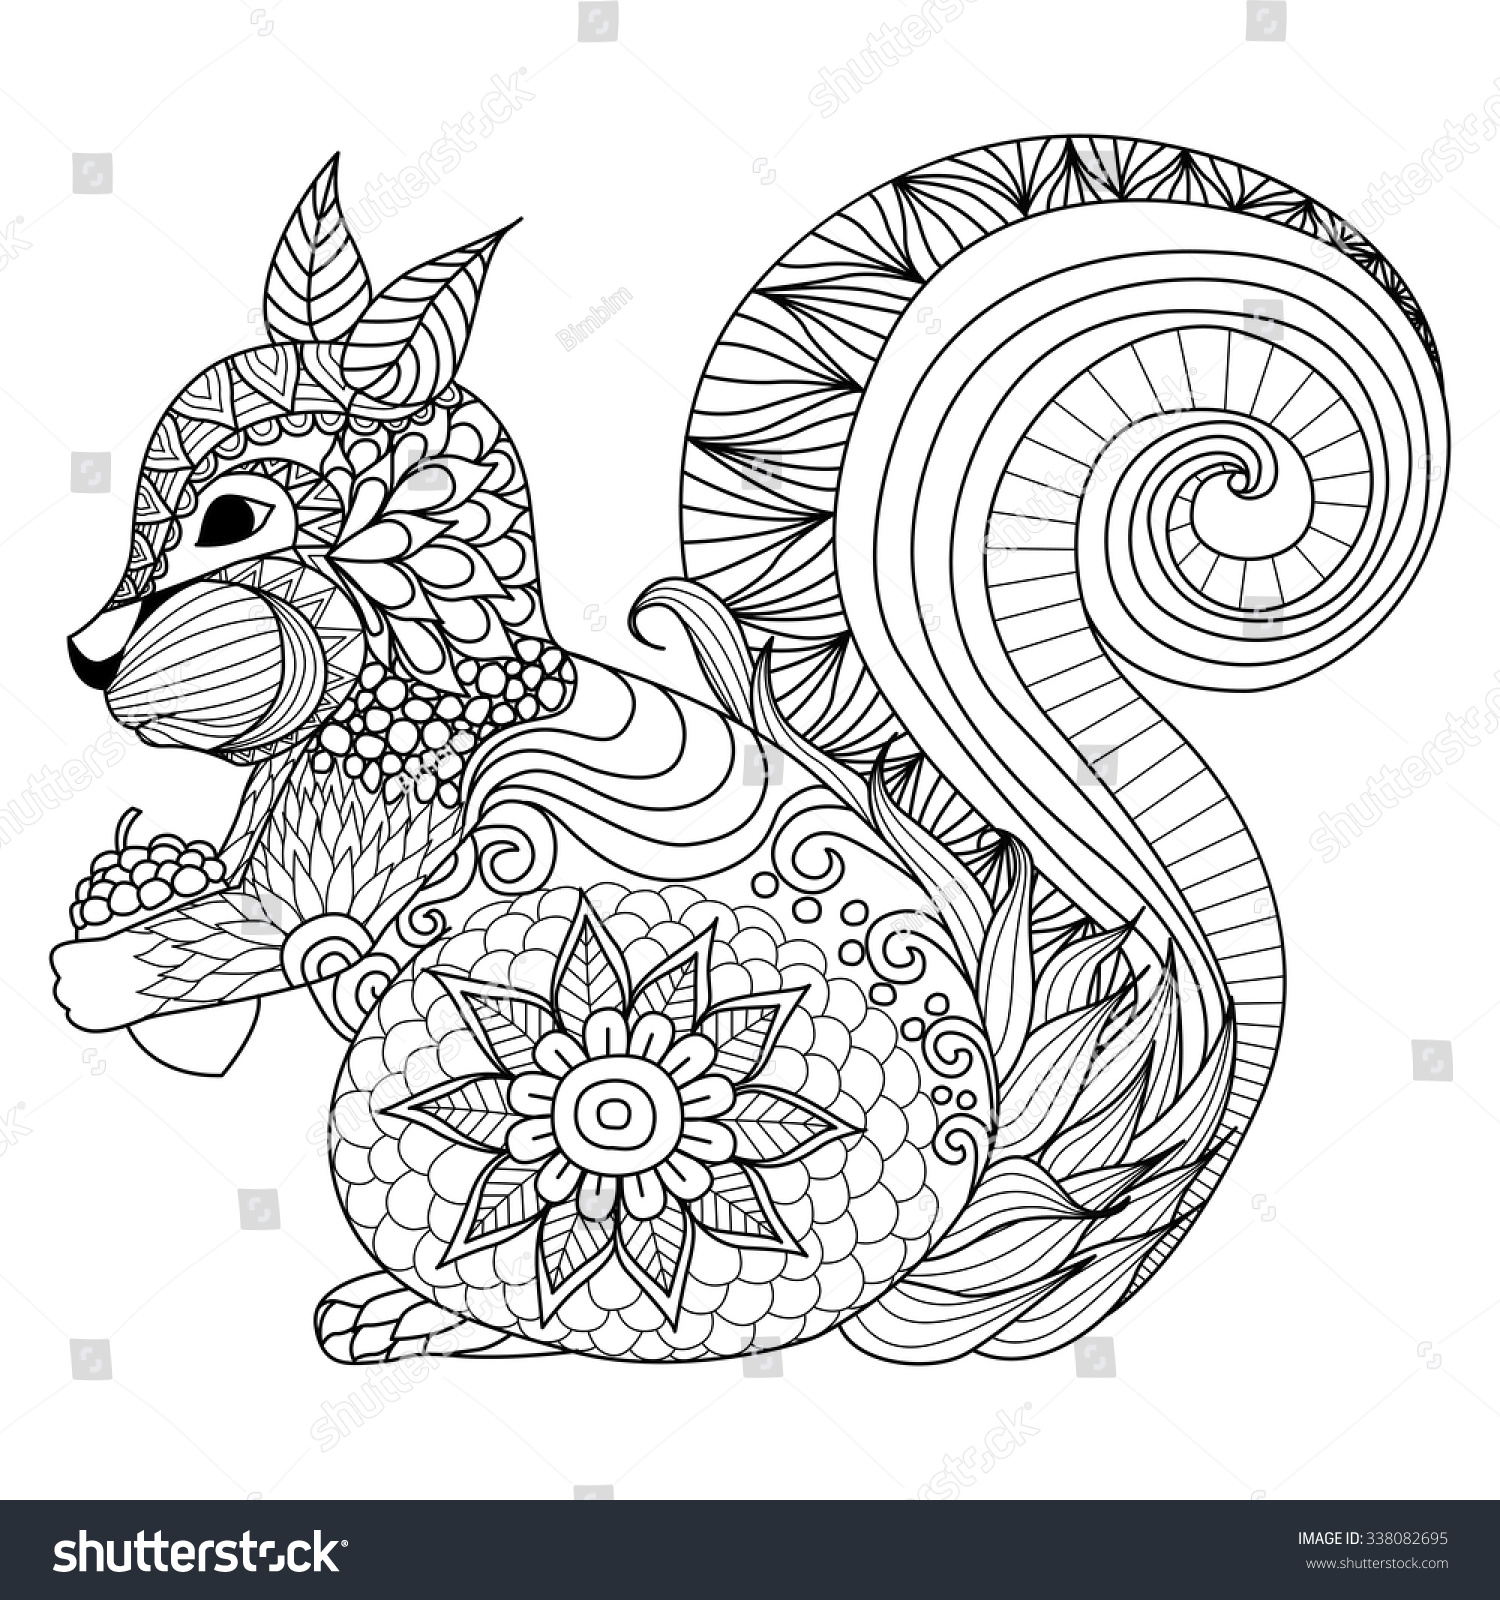 Shirt design book - Hand Drawn Squirrel Zentangle Style For Coloring Book Tattoo T Shirt Design Logo